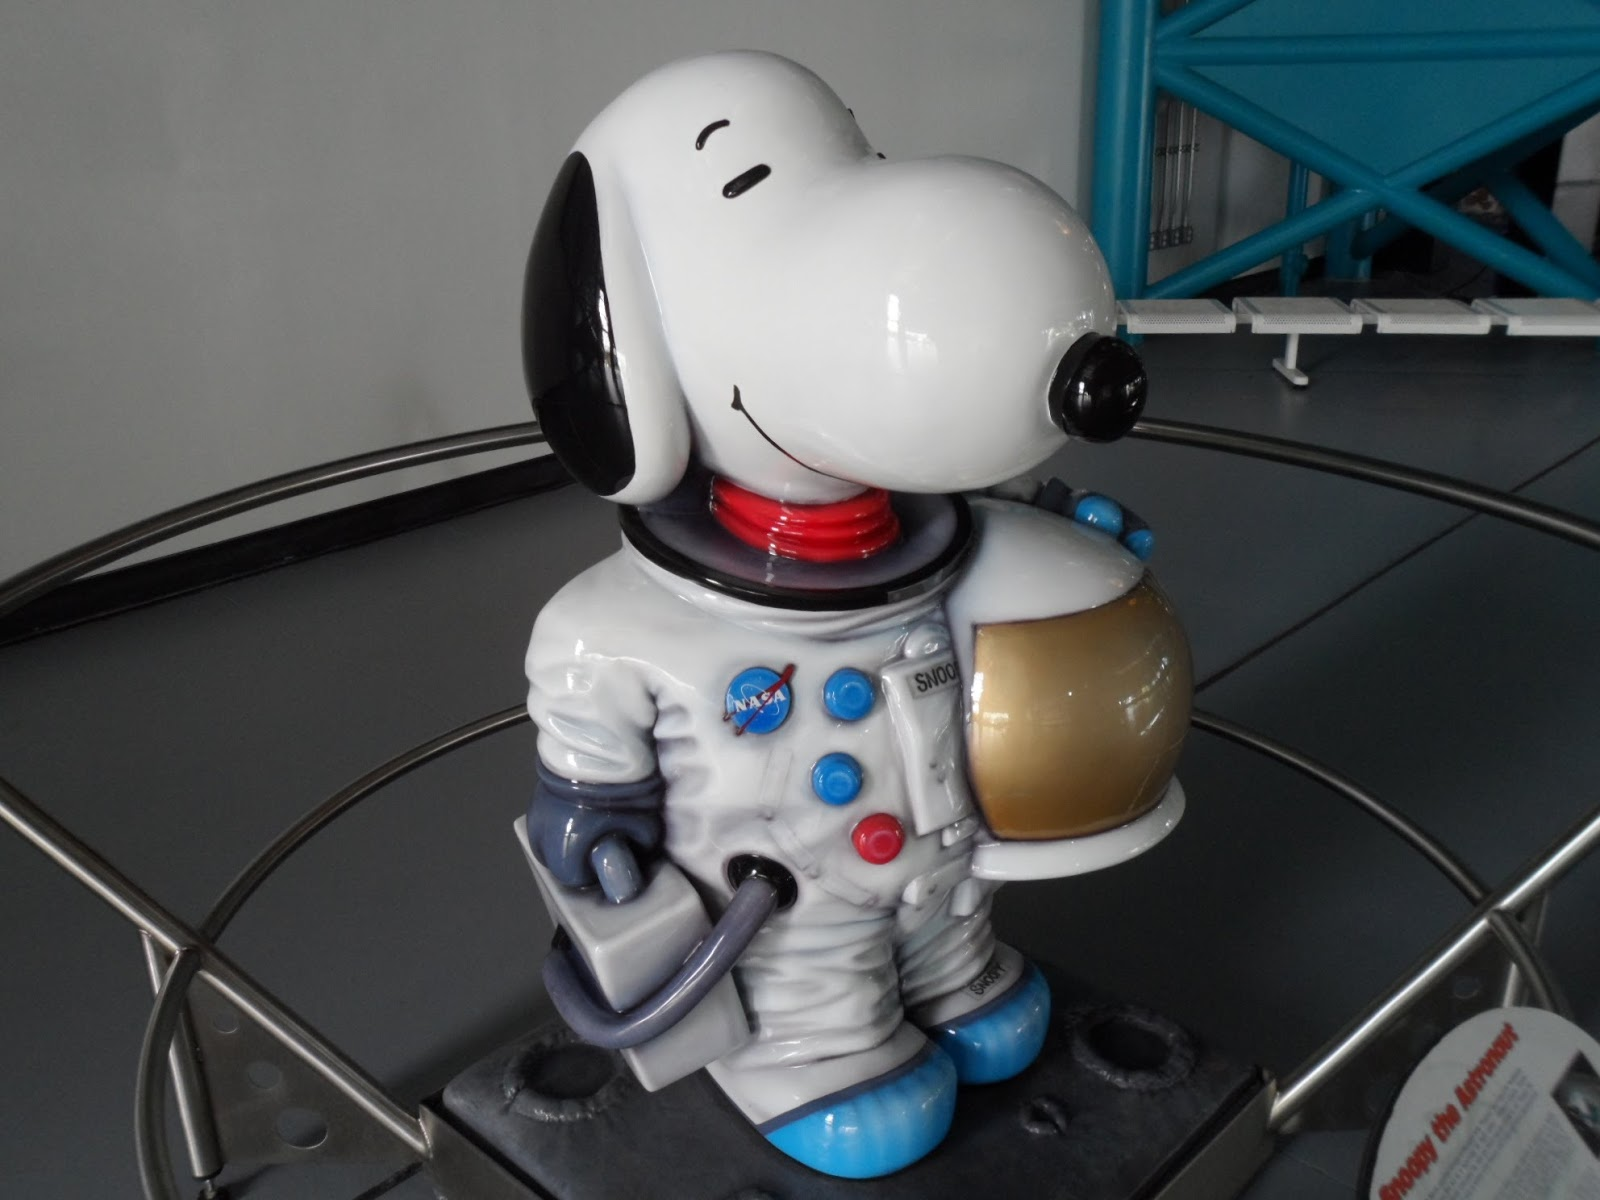 Every Day Is Special October 4 Snoopys Debut Loop Kartini Gardens By The Bay Singapore Dewasa This Snoopy Astronaut Statue Made Its Appearance At Kennedy Space Center